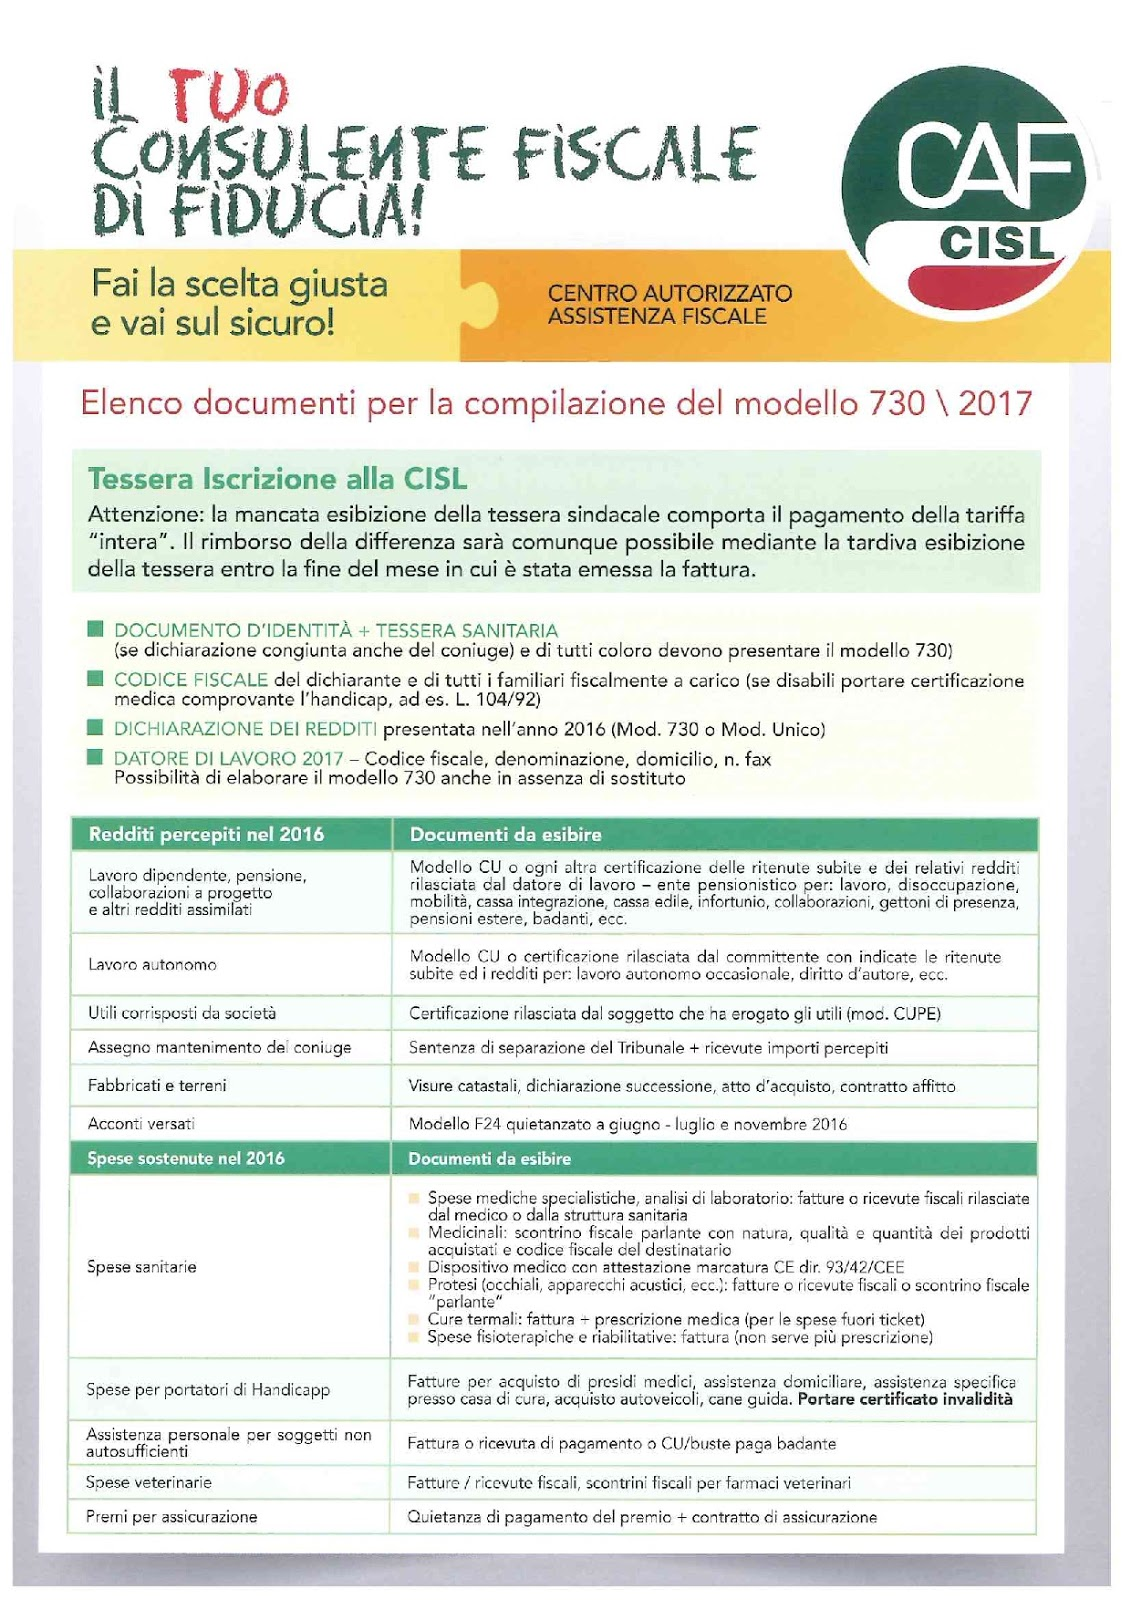 Fim cisl whirlpool melano marischio modello 730 2017 for Documenti per 730